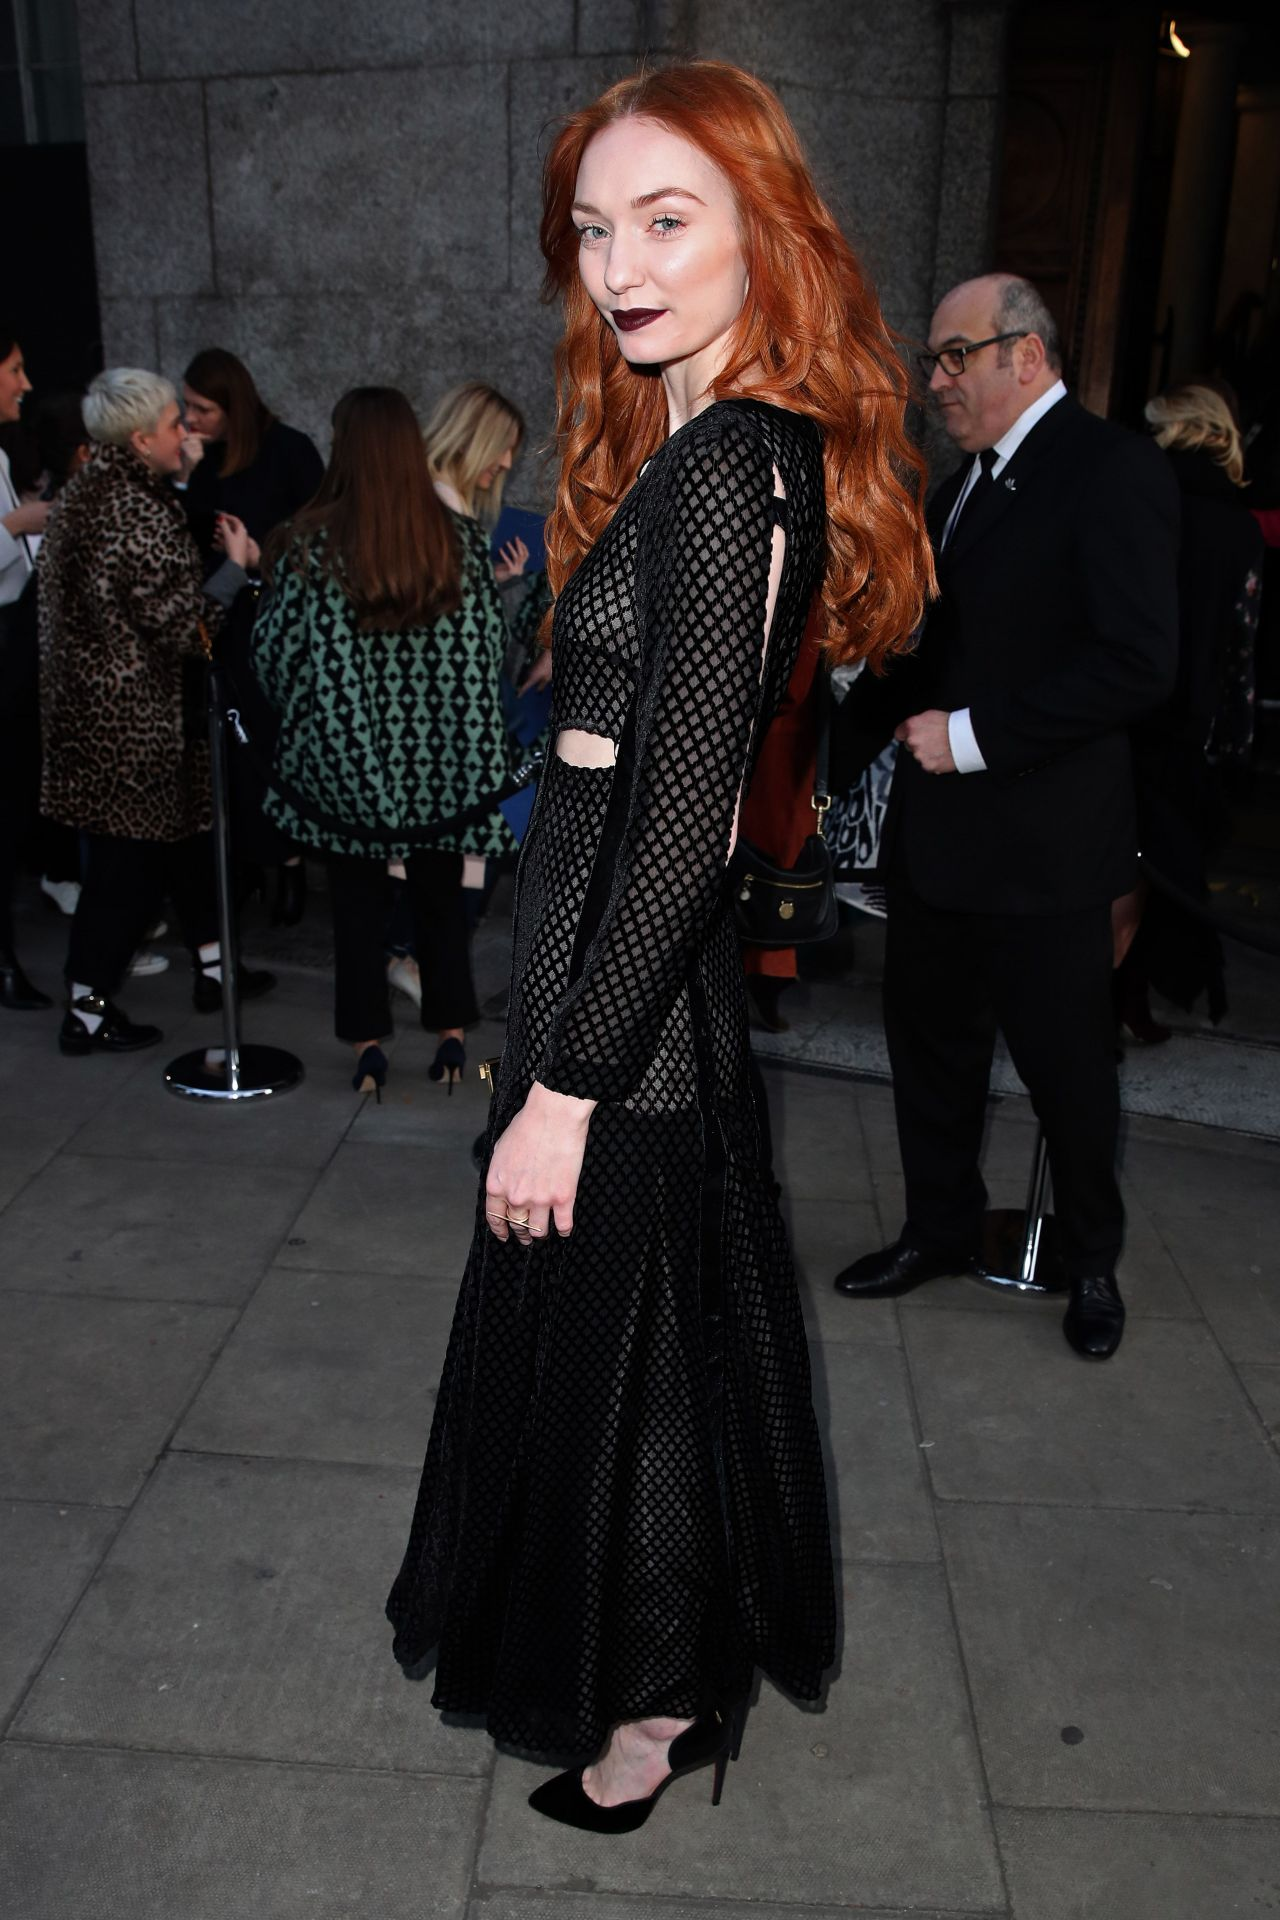 Eleanor Tomlinson London Fashion Week 2 18 2017